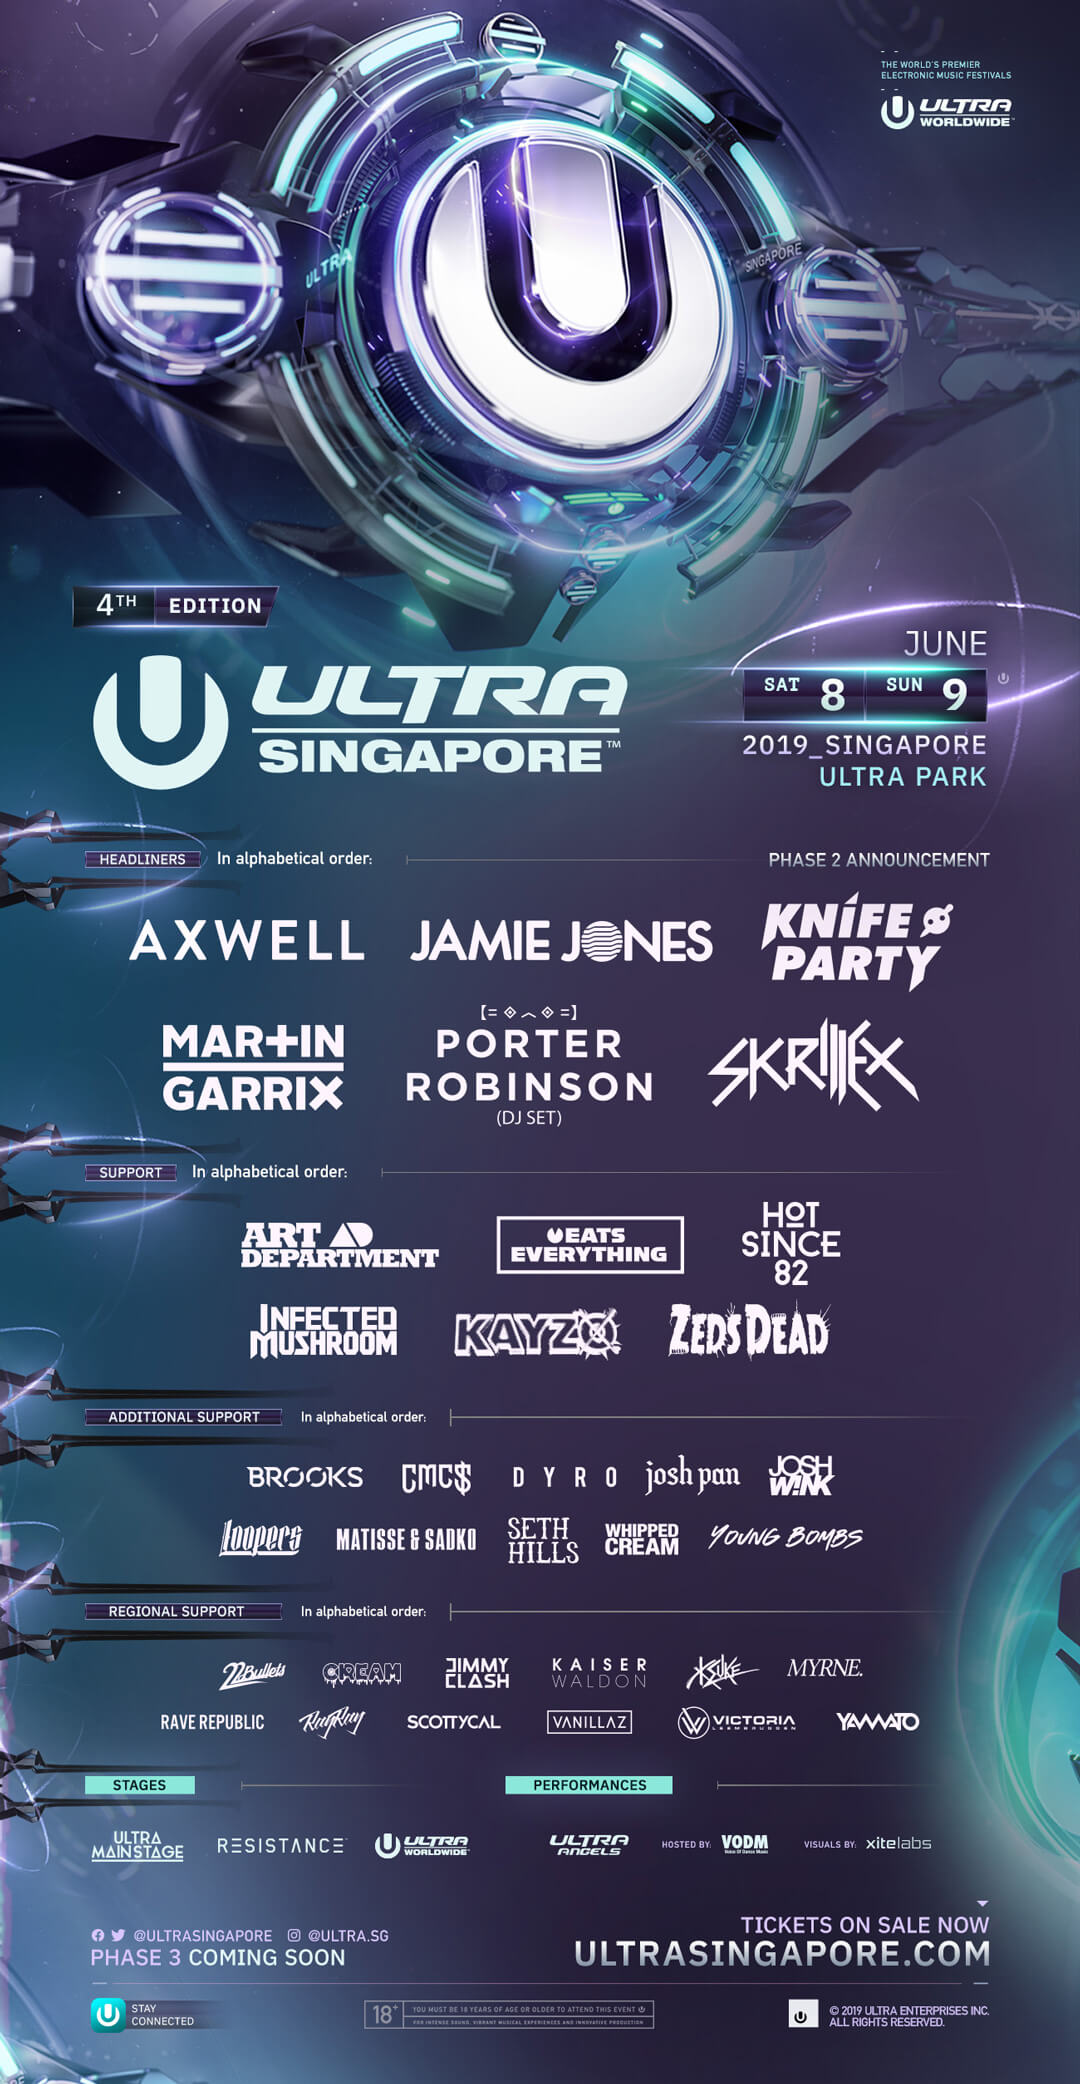 ultra-singapore-lineup-phase2-2019